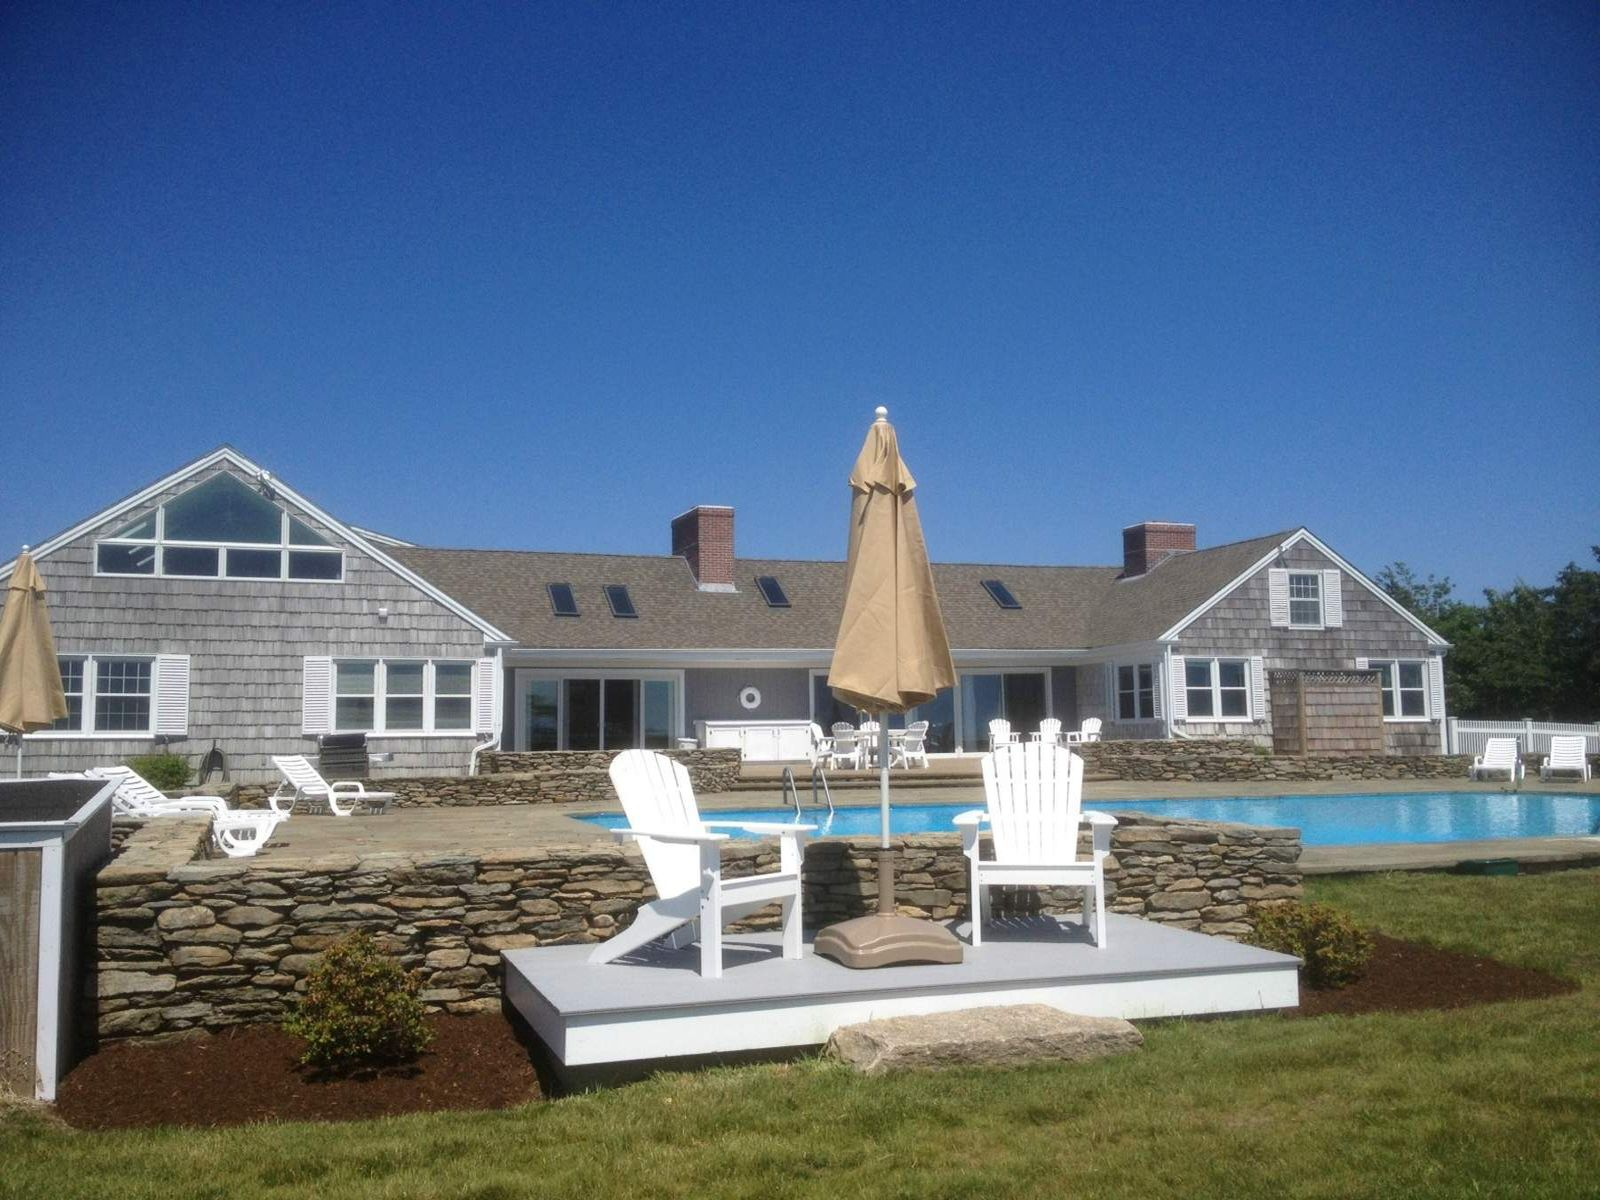 Lewis Bay Beach Front, West Yarmouth MA Single Family Home - Cape Cod Real Estate